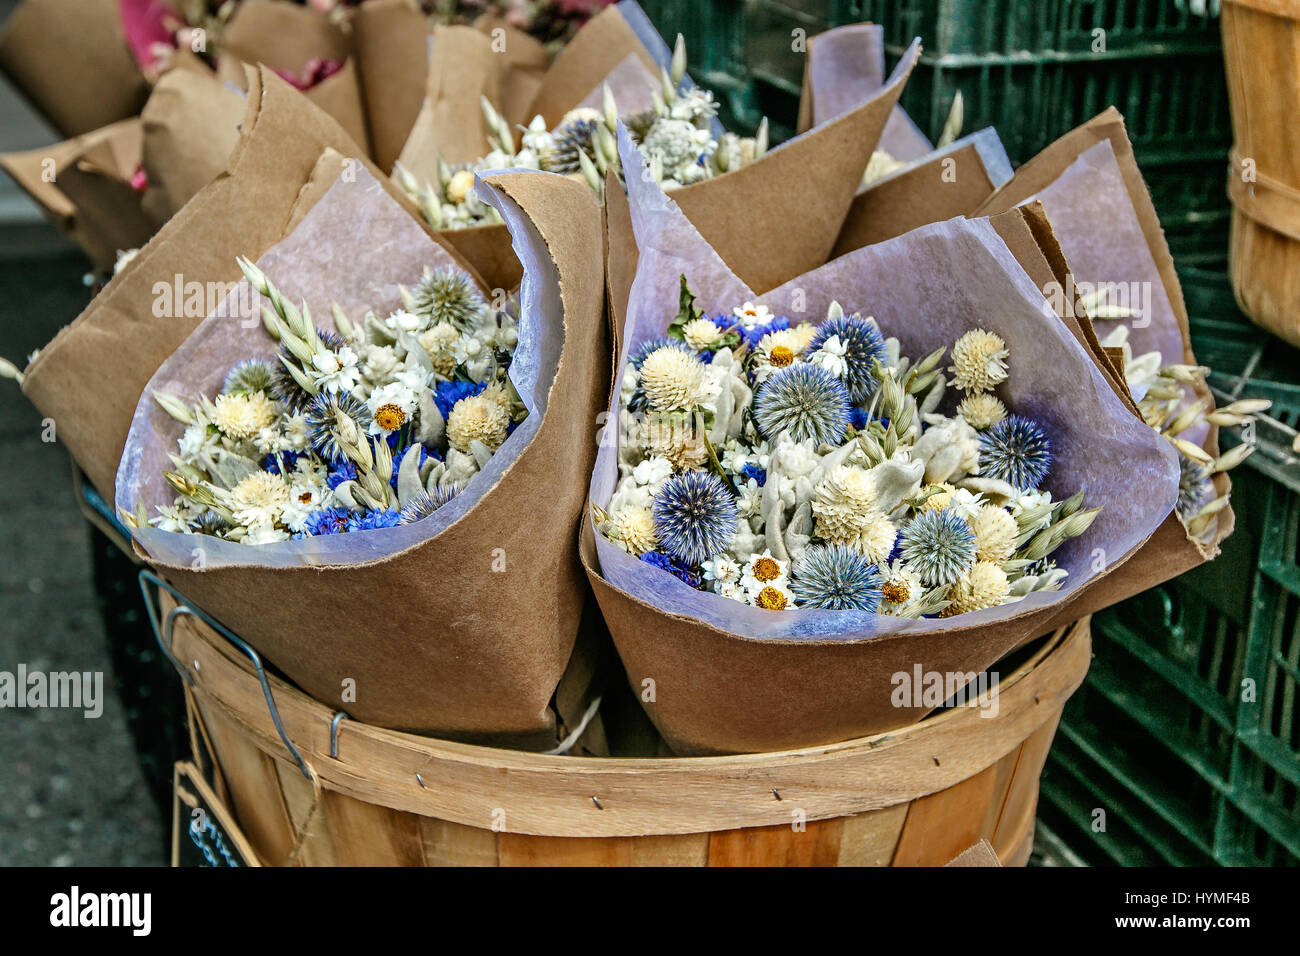 Bouquets Of Dried Flowers Stock Photos Bouquets Of Dried Flowers